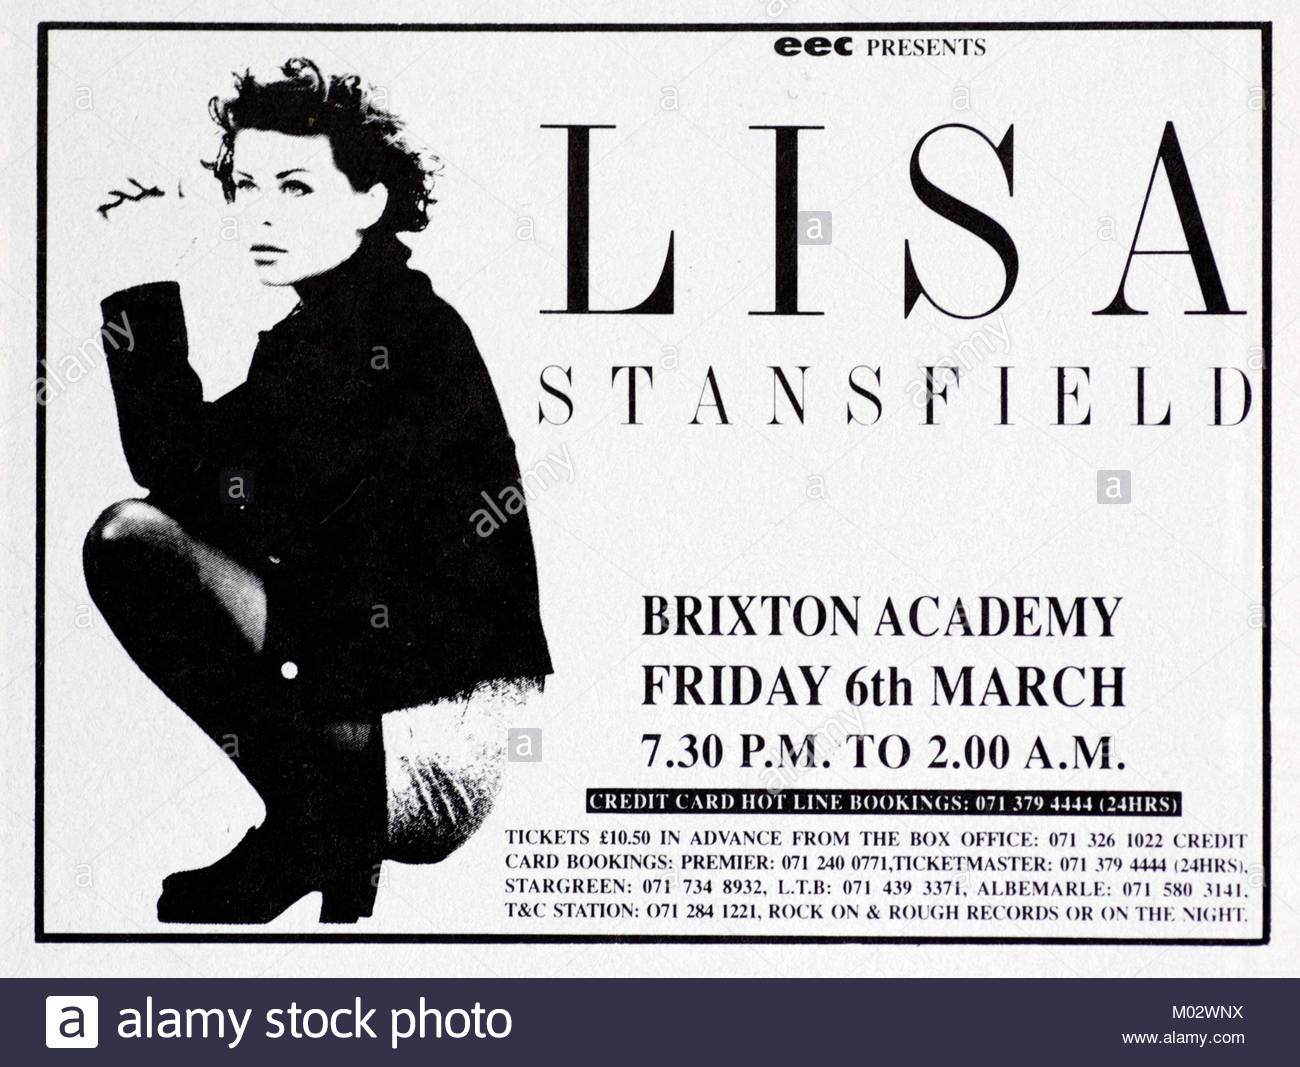 Magazine advert with tour date for Lisa Stansfield 1992 - Stock Image